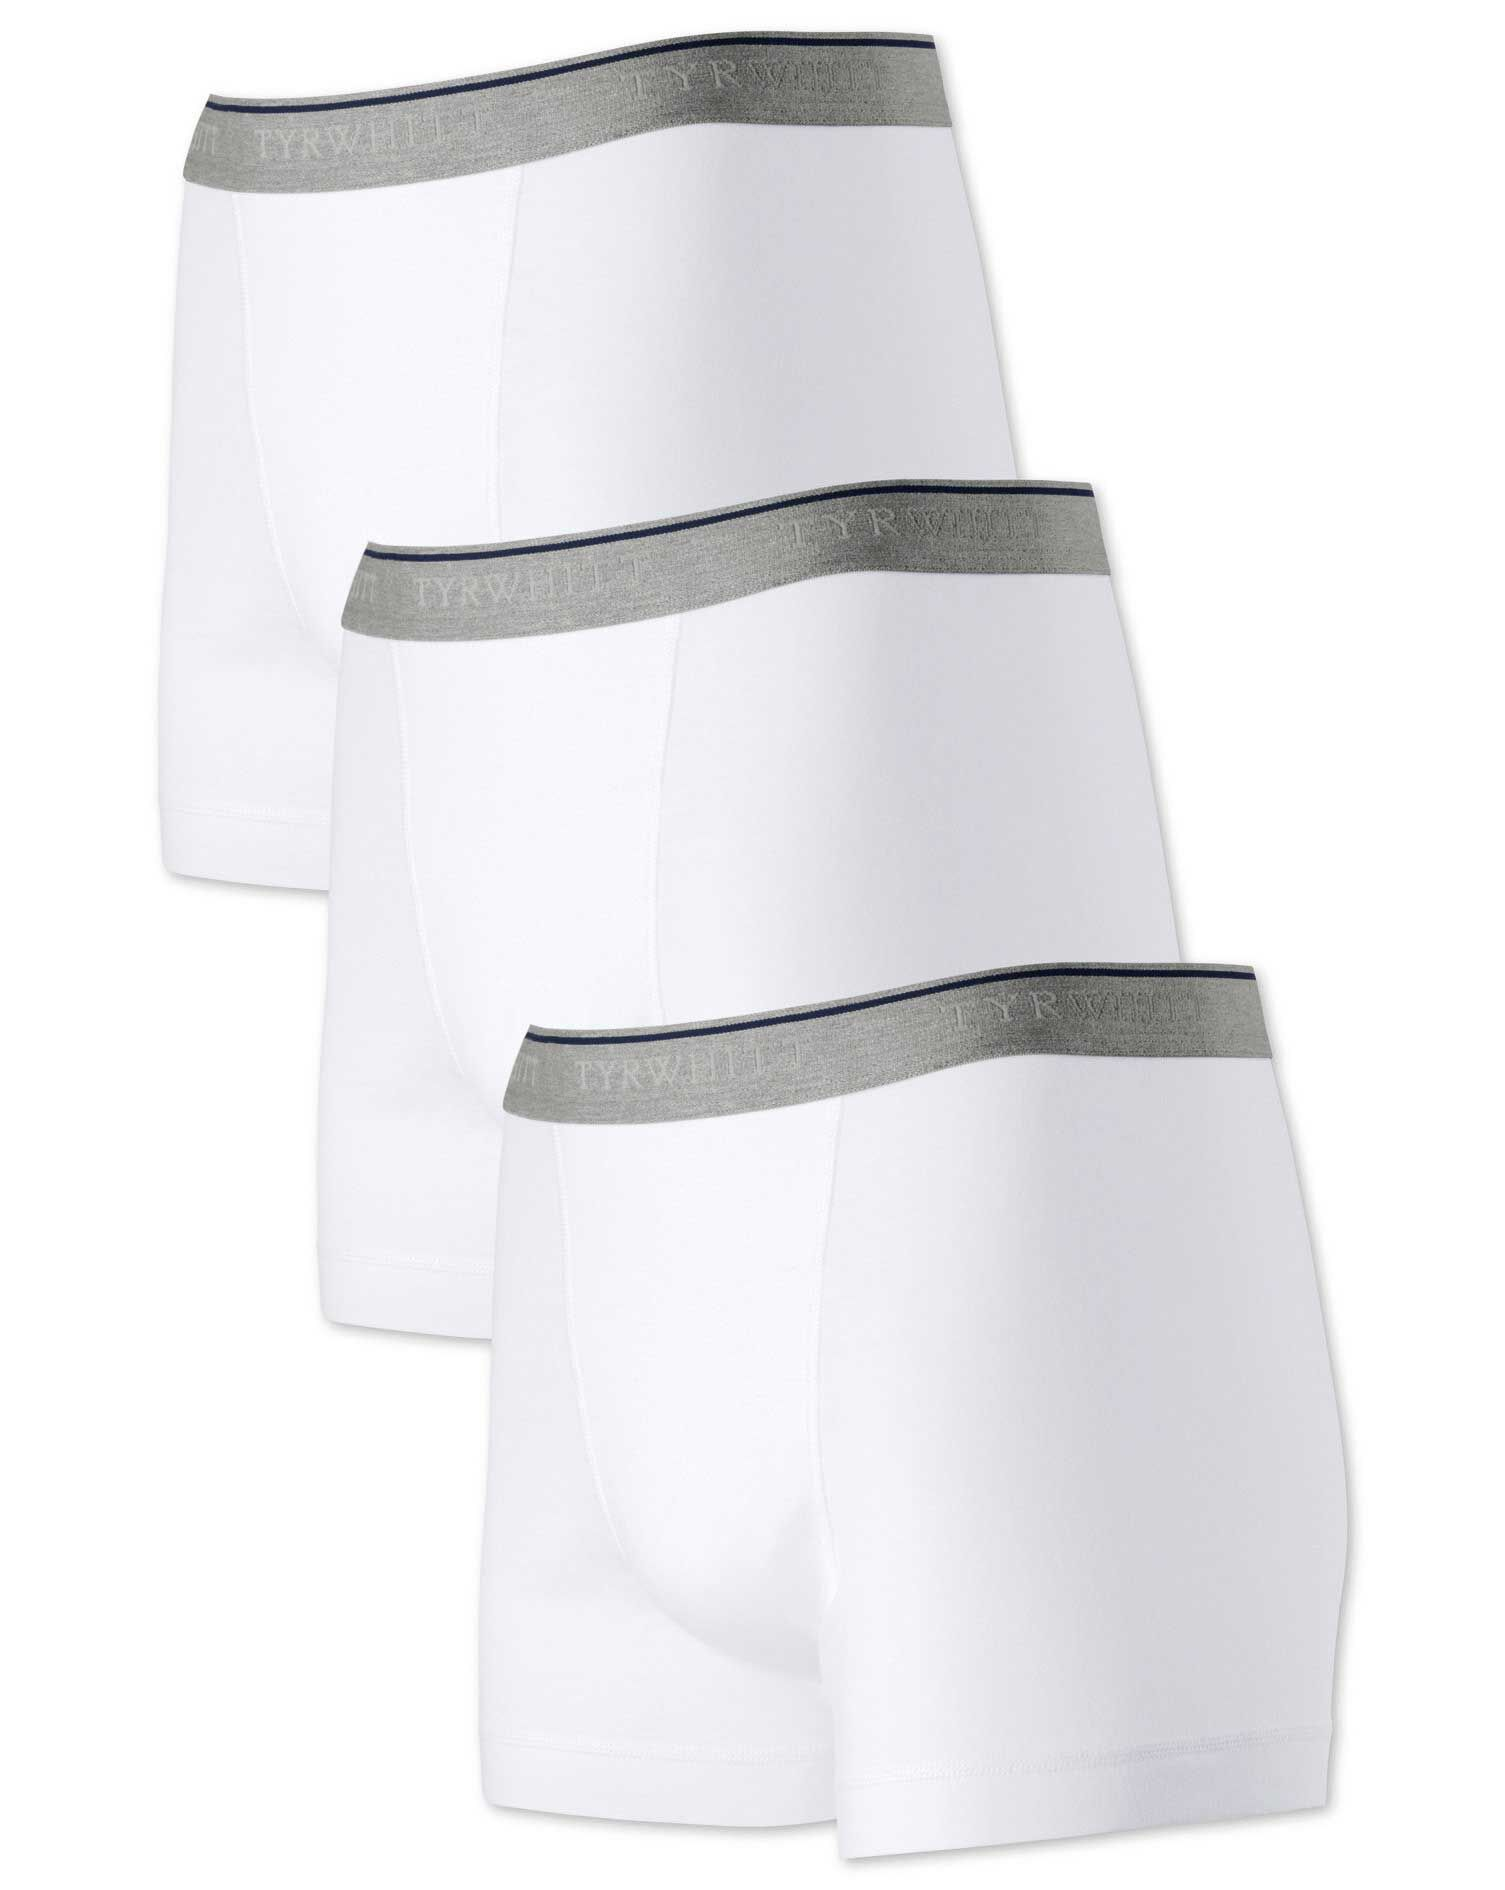 White Jersey 3 Pack Trunks Size XS by Charles Tyrwhitt